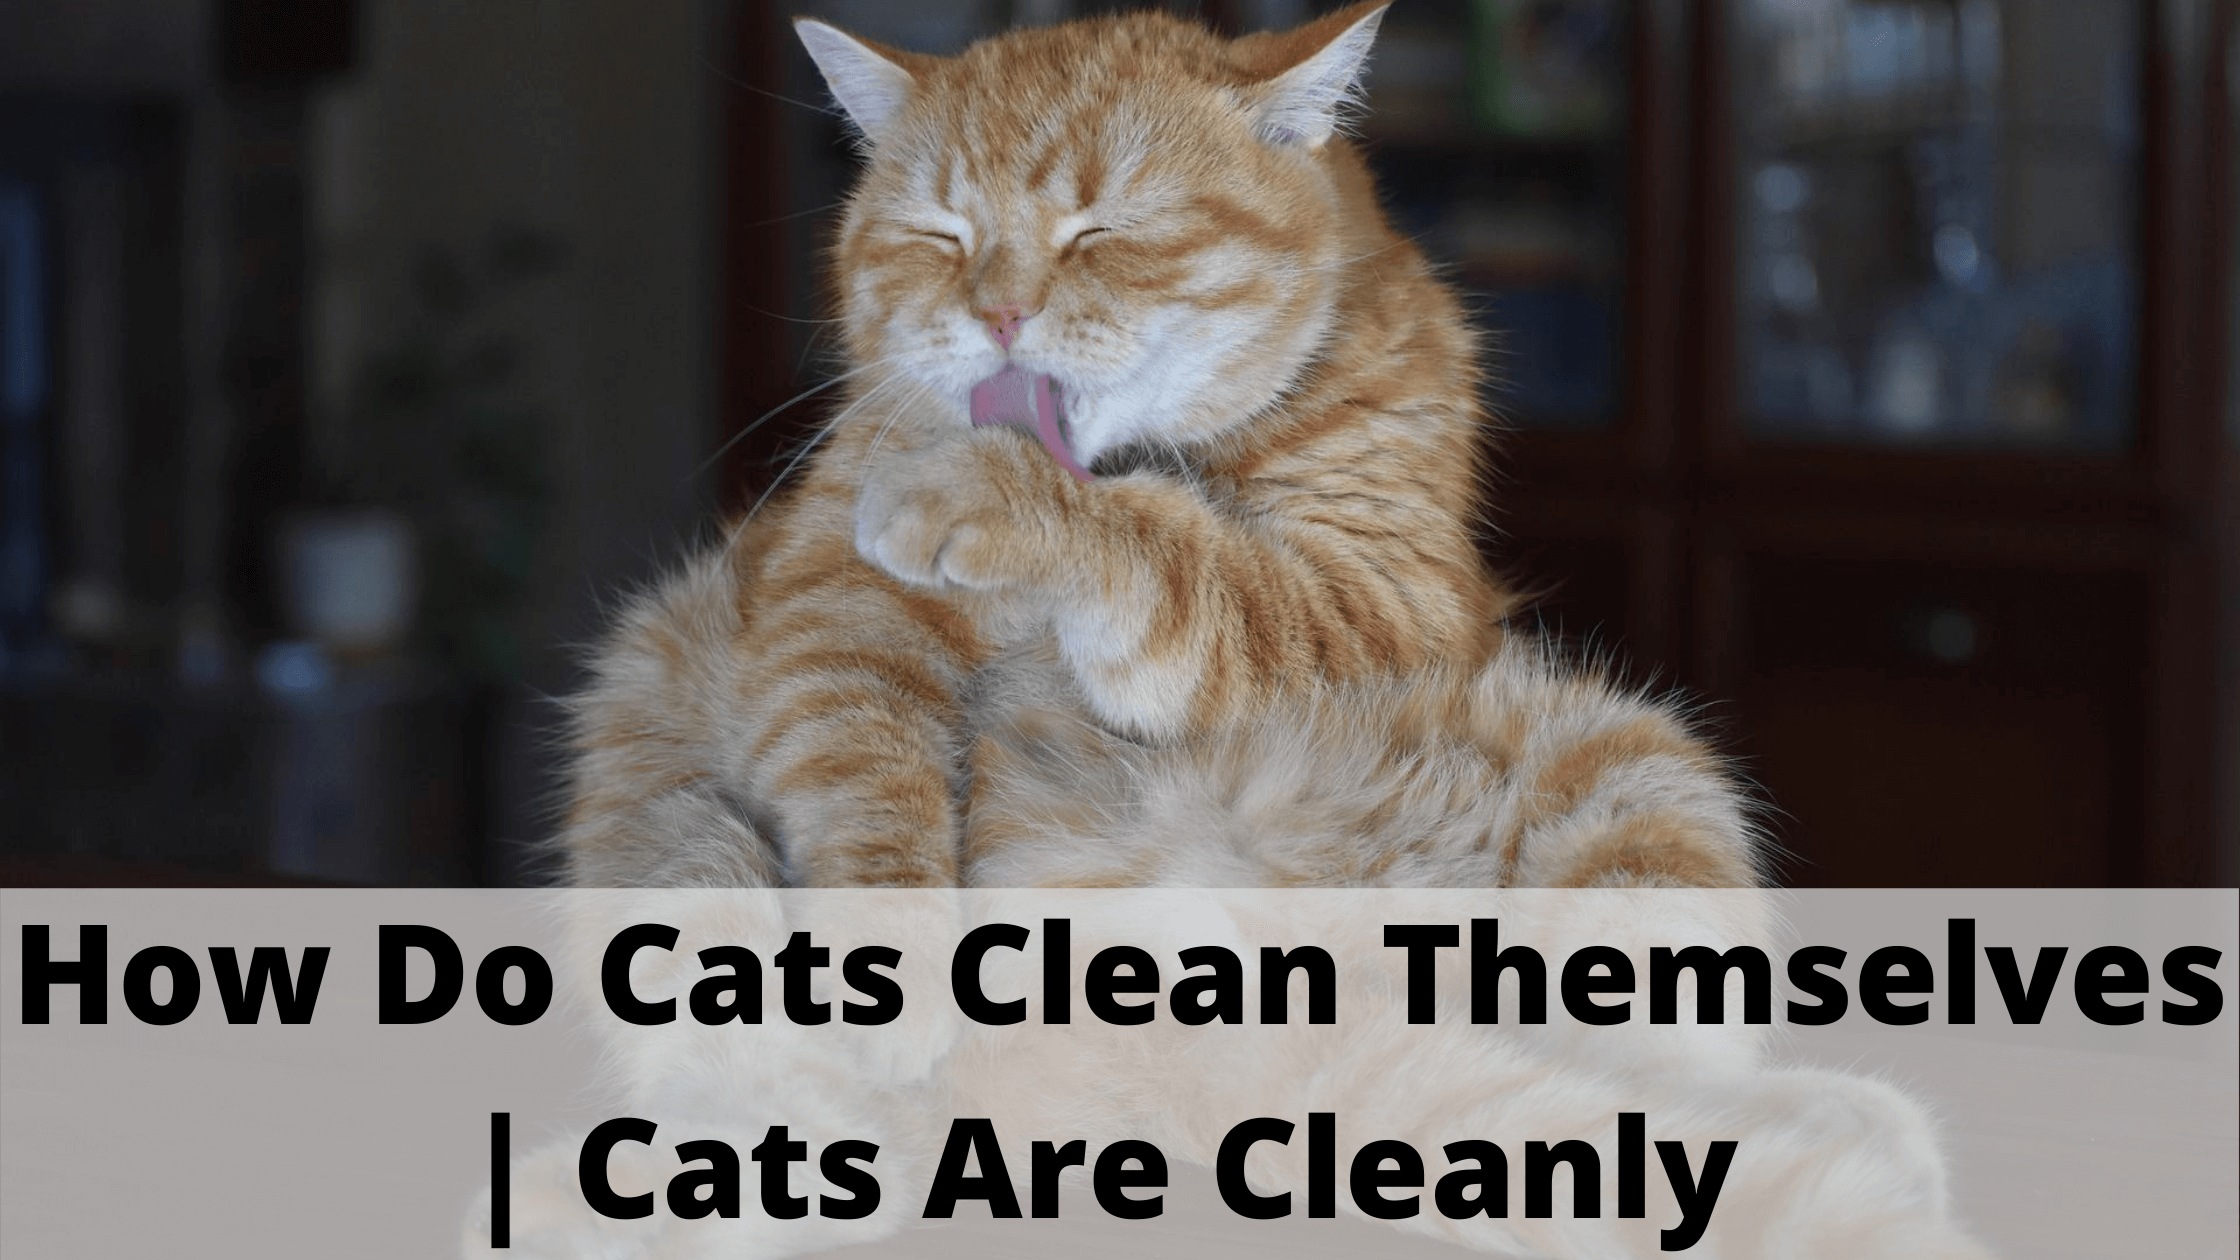 how-do-cats-clean-themselves-cats-are-cleanly